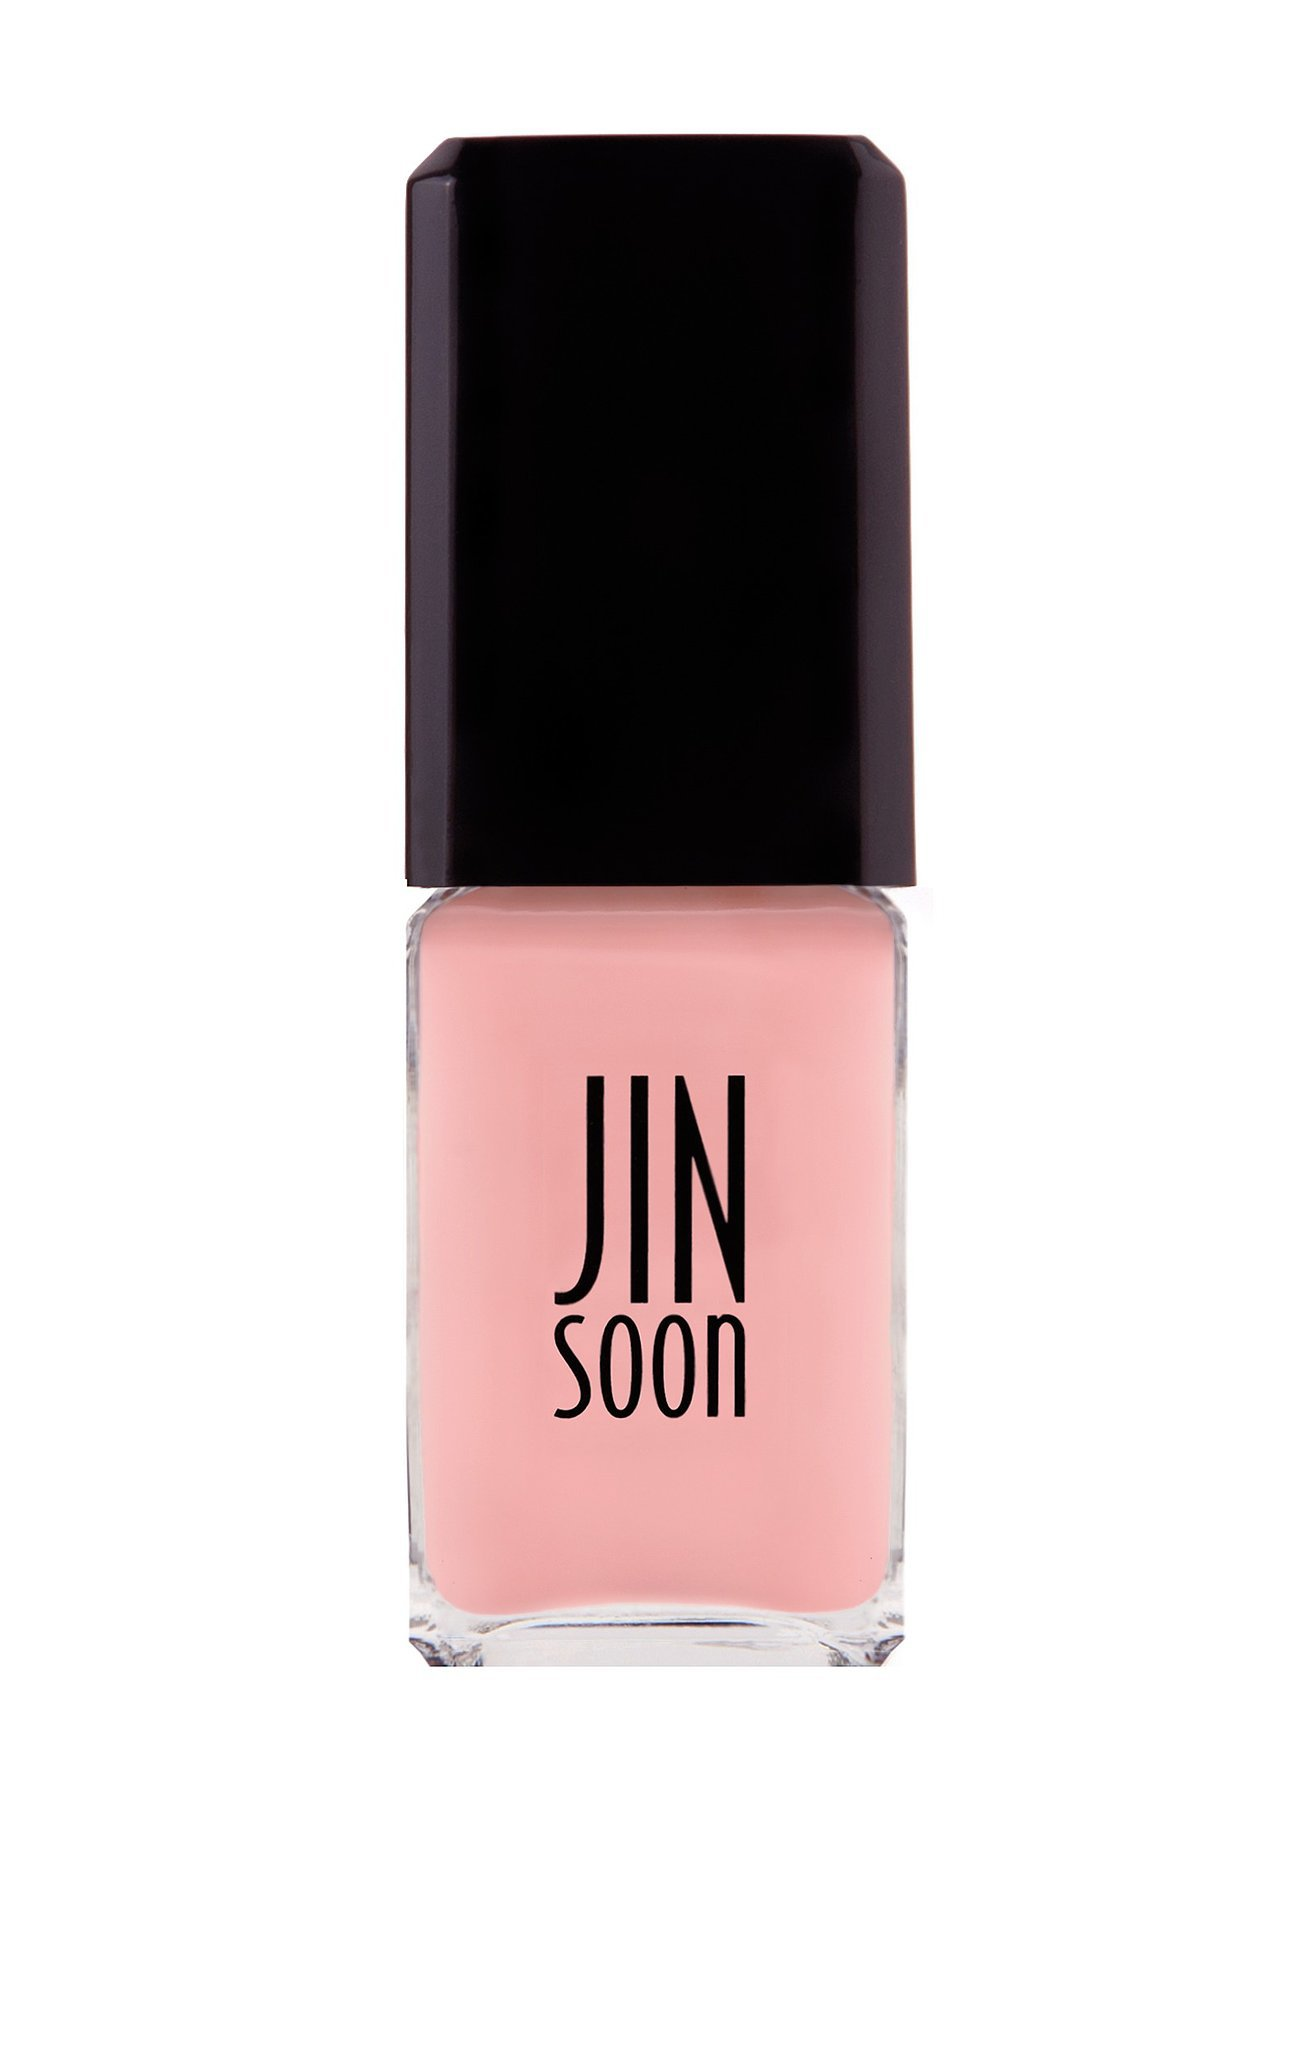 Jin Soon Dolly Pink ($18)